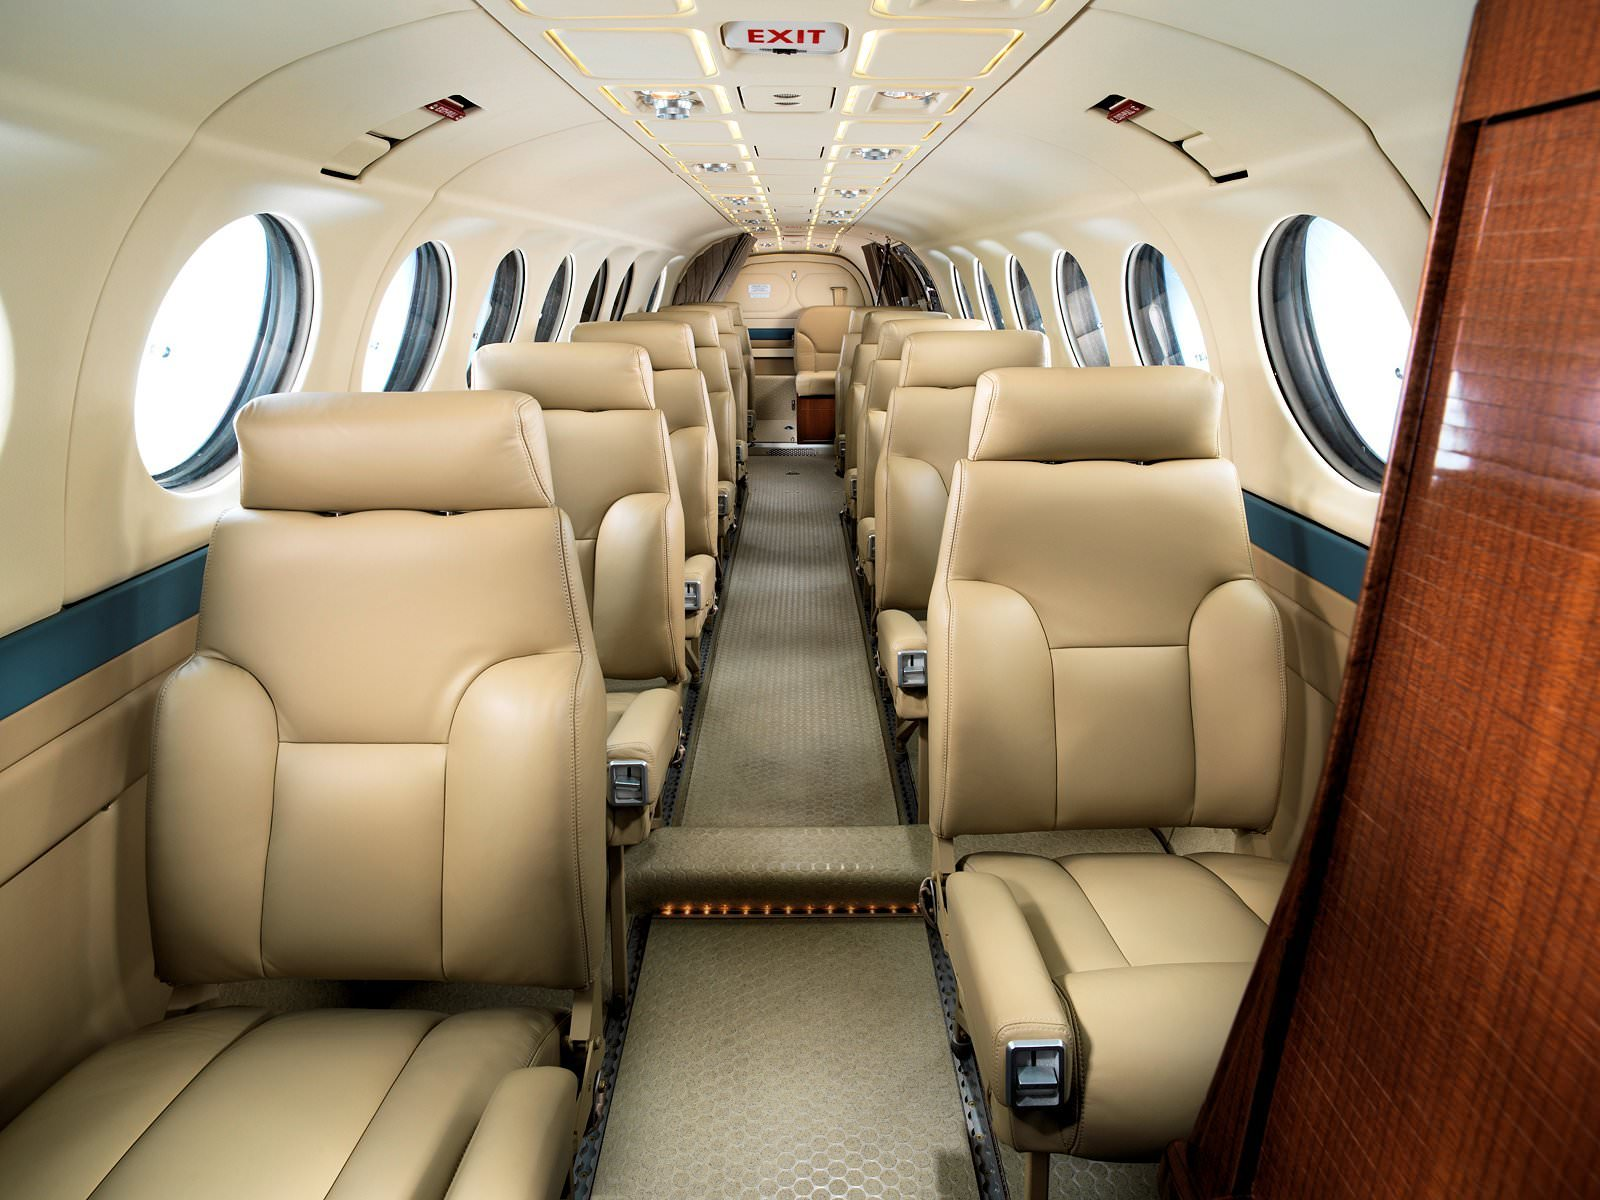 img55d381cbb7bd1 king air traveler airline style high density commuter seat 32 0369 Beechcraft F90 at nearapp.co